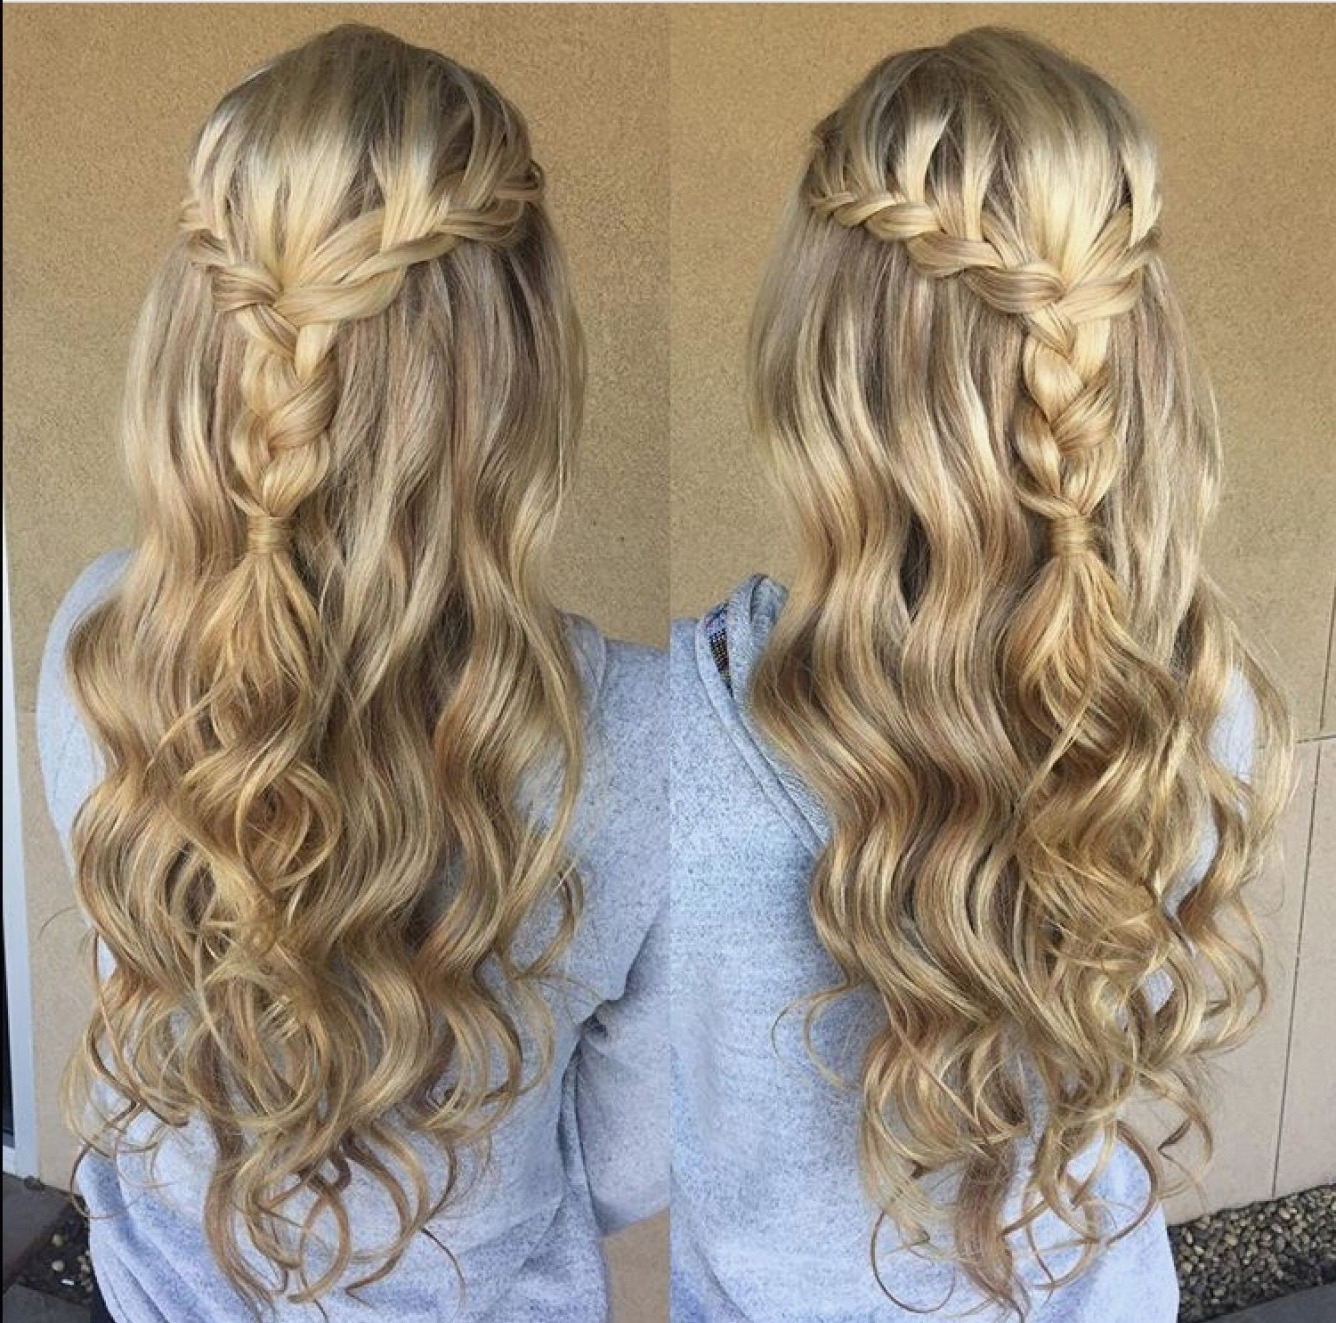 Braid Hairstyles : Cool Half Up Half Down Braided Prom Hairstyles Regarding Current Half Up And Braided Hairstyles (View 2 of 15)